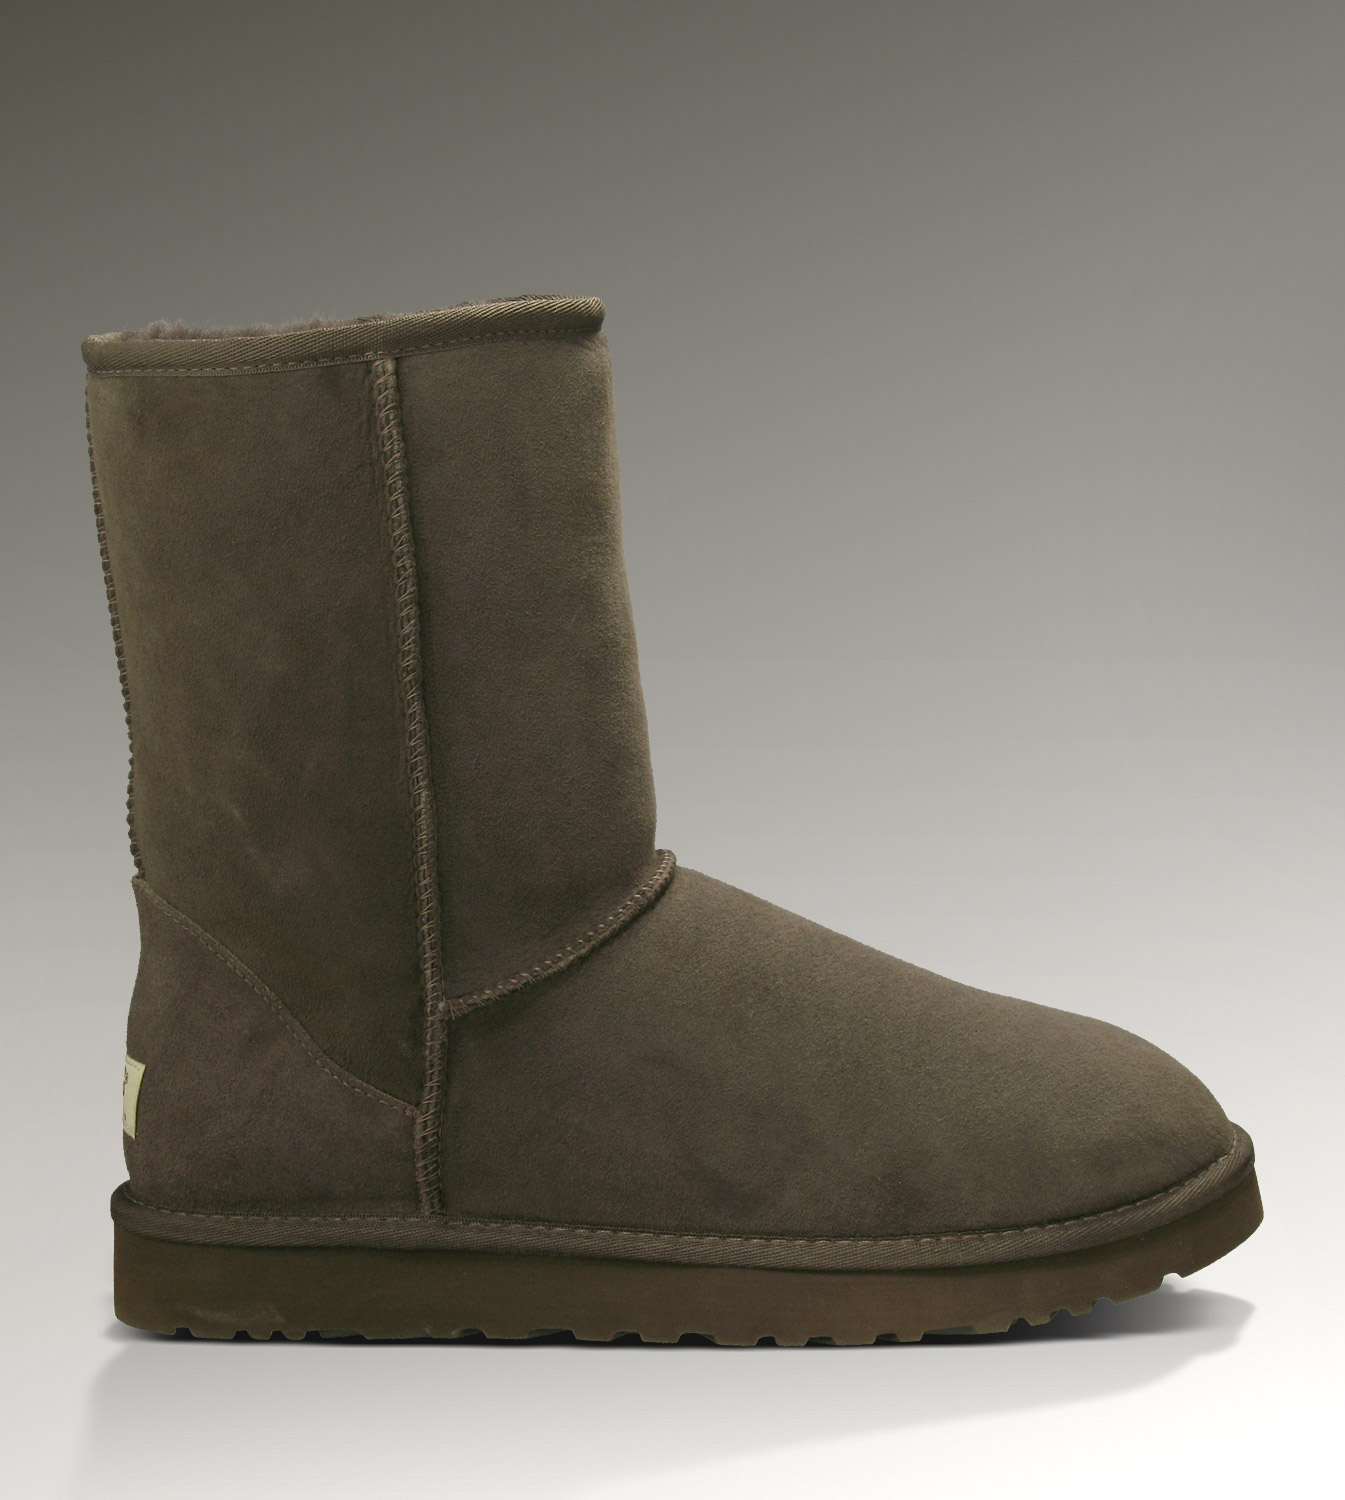 UGG Classic Short 5800 Chocolate Boots